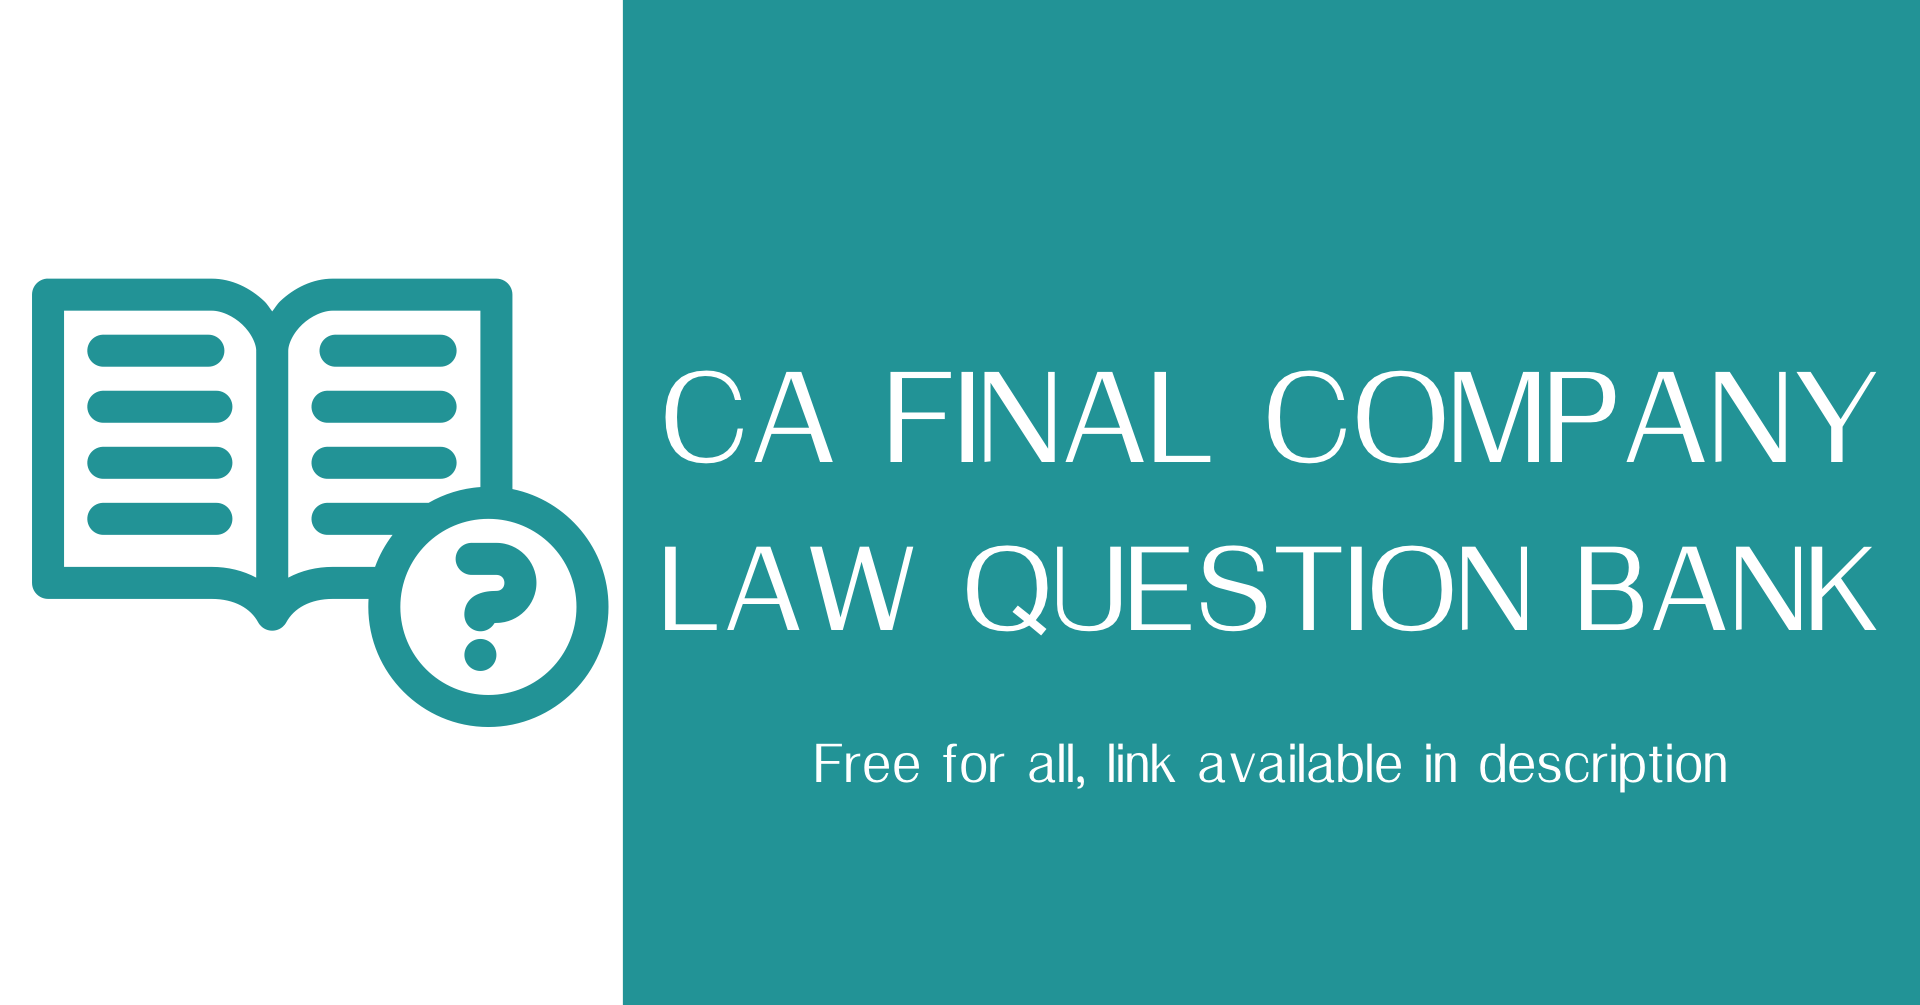 COMPANY LAW QUESTION BANK